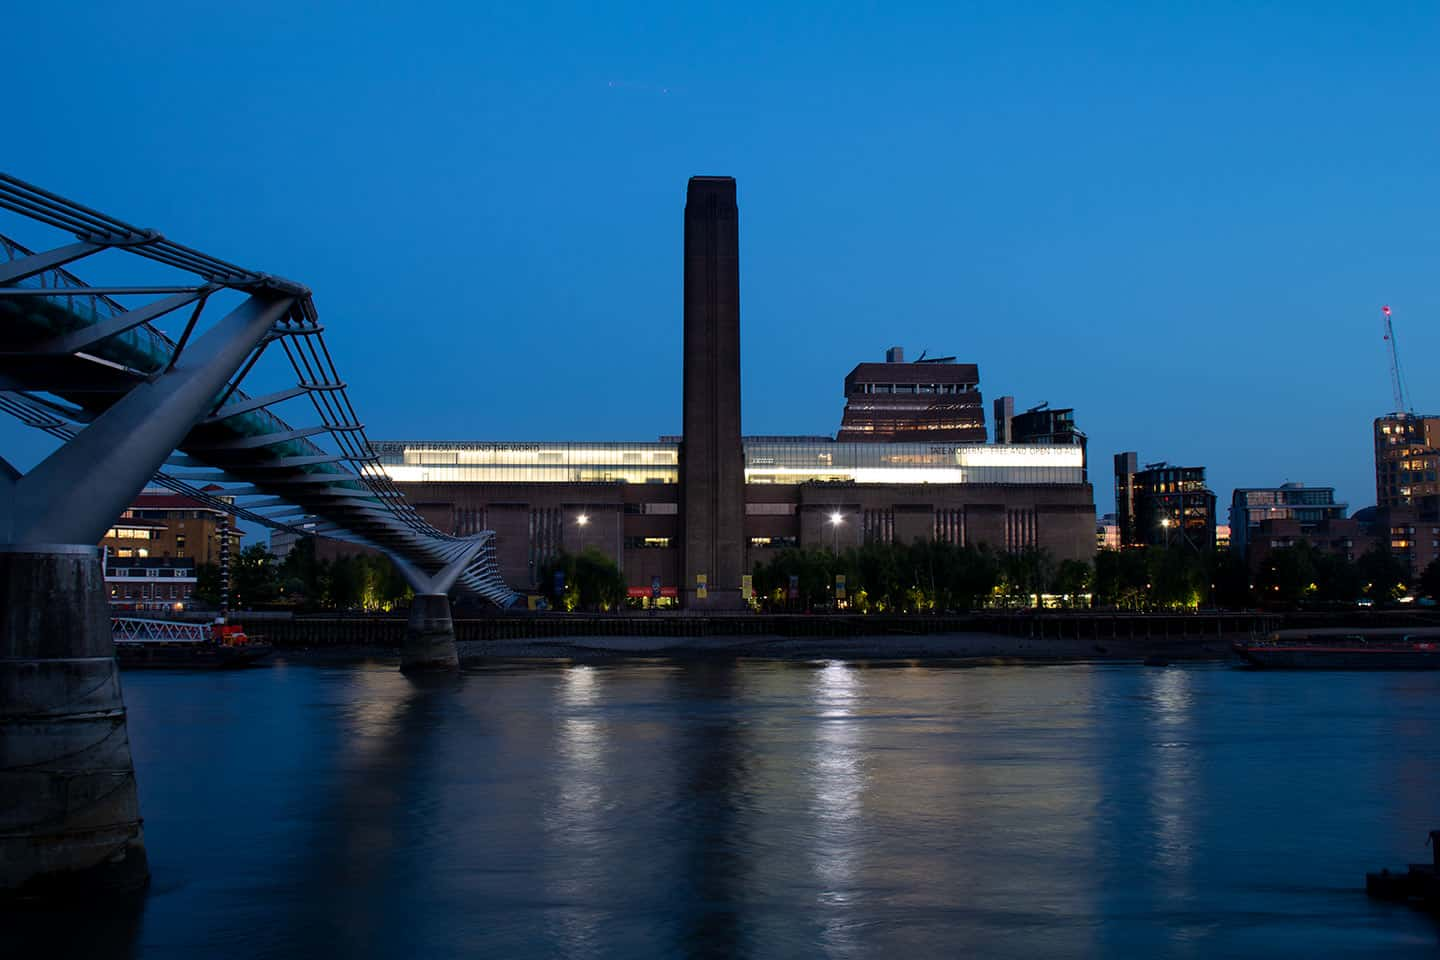 Top sights in London Image of Tate Modern art gallery at night